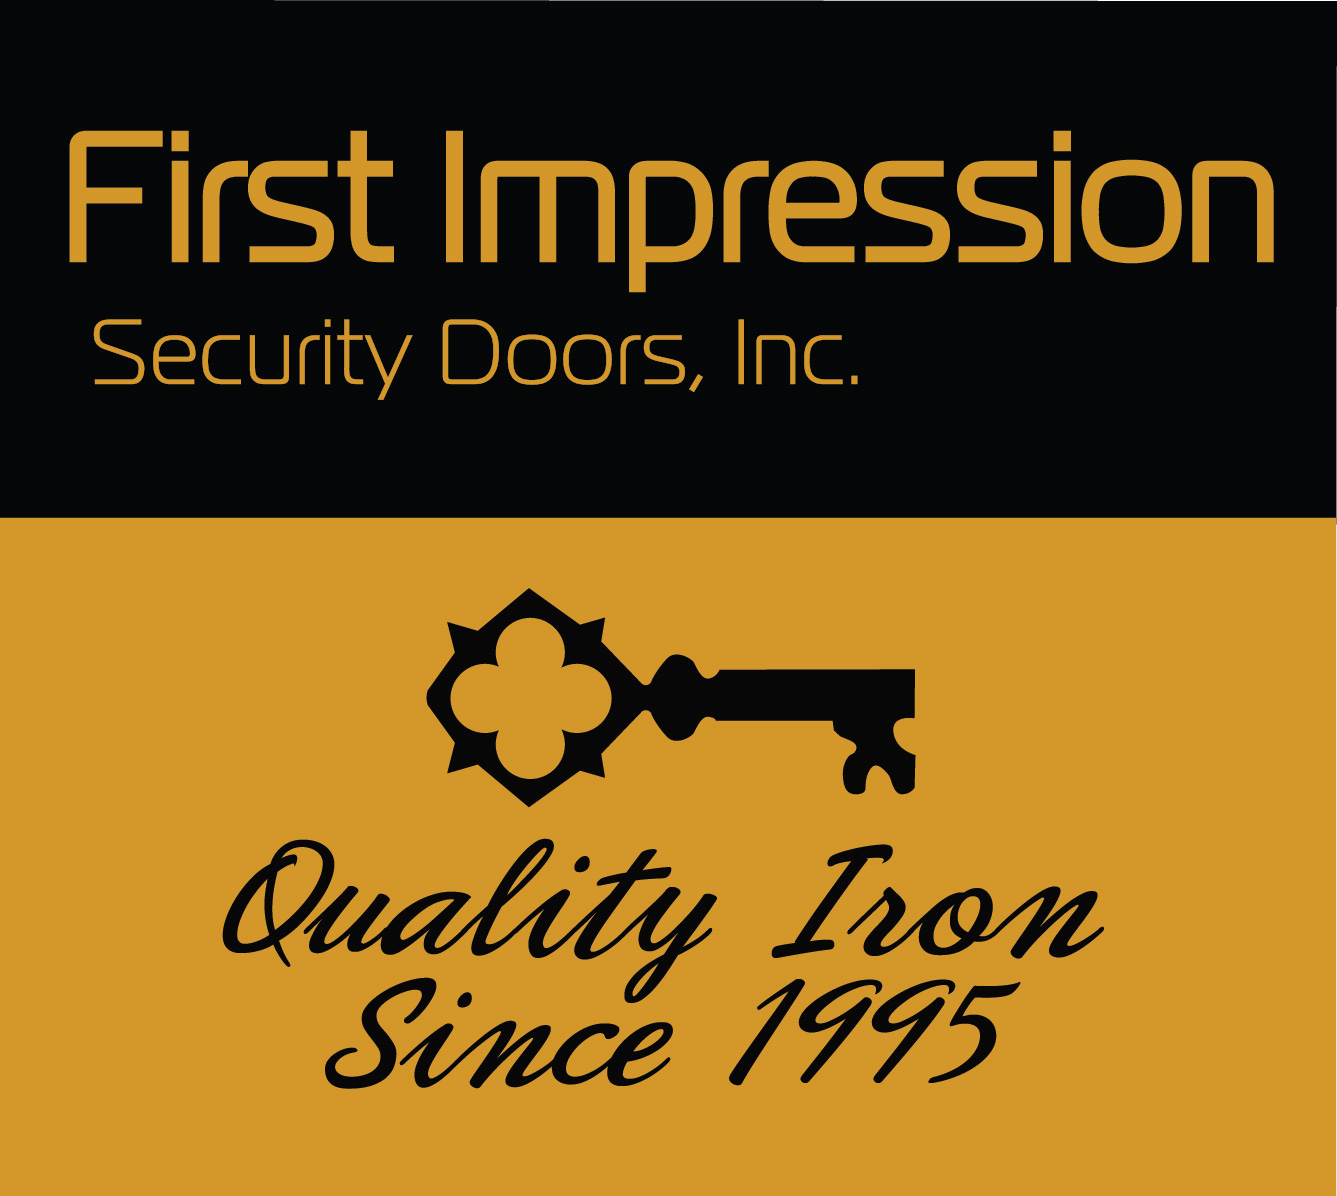 First Impression Security Doors  sc 1 st  ChamberofCommerce.com : first impression doors - pezcame.com